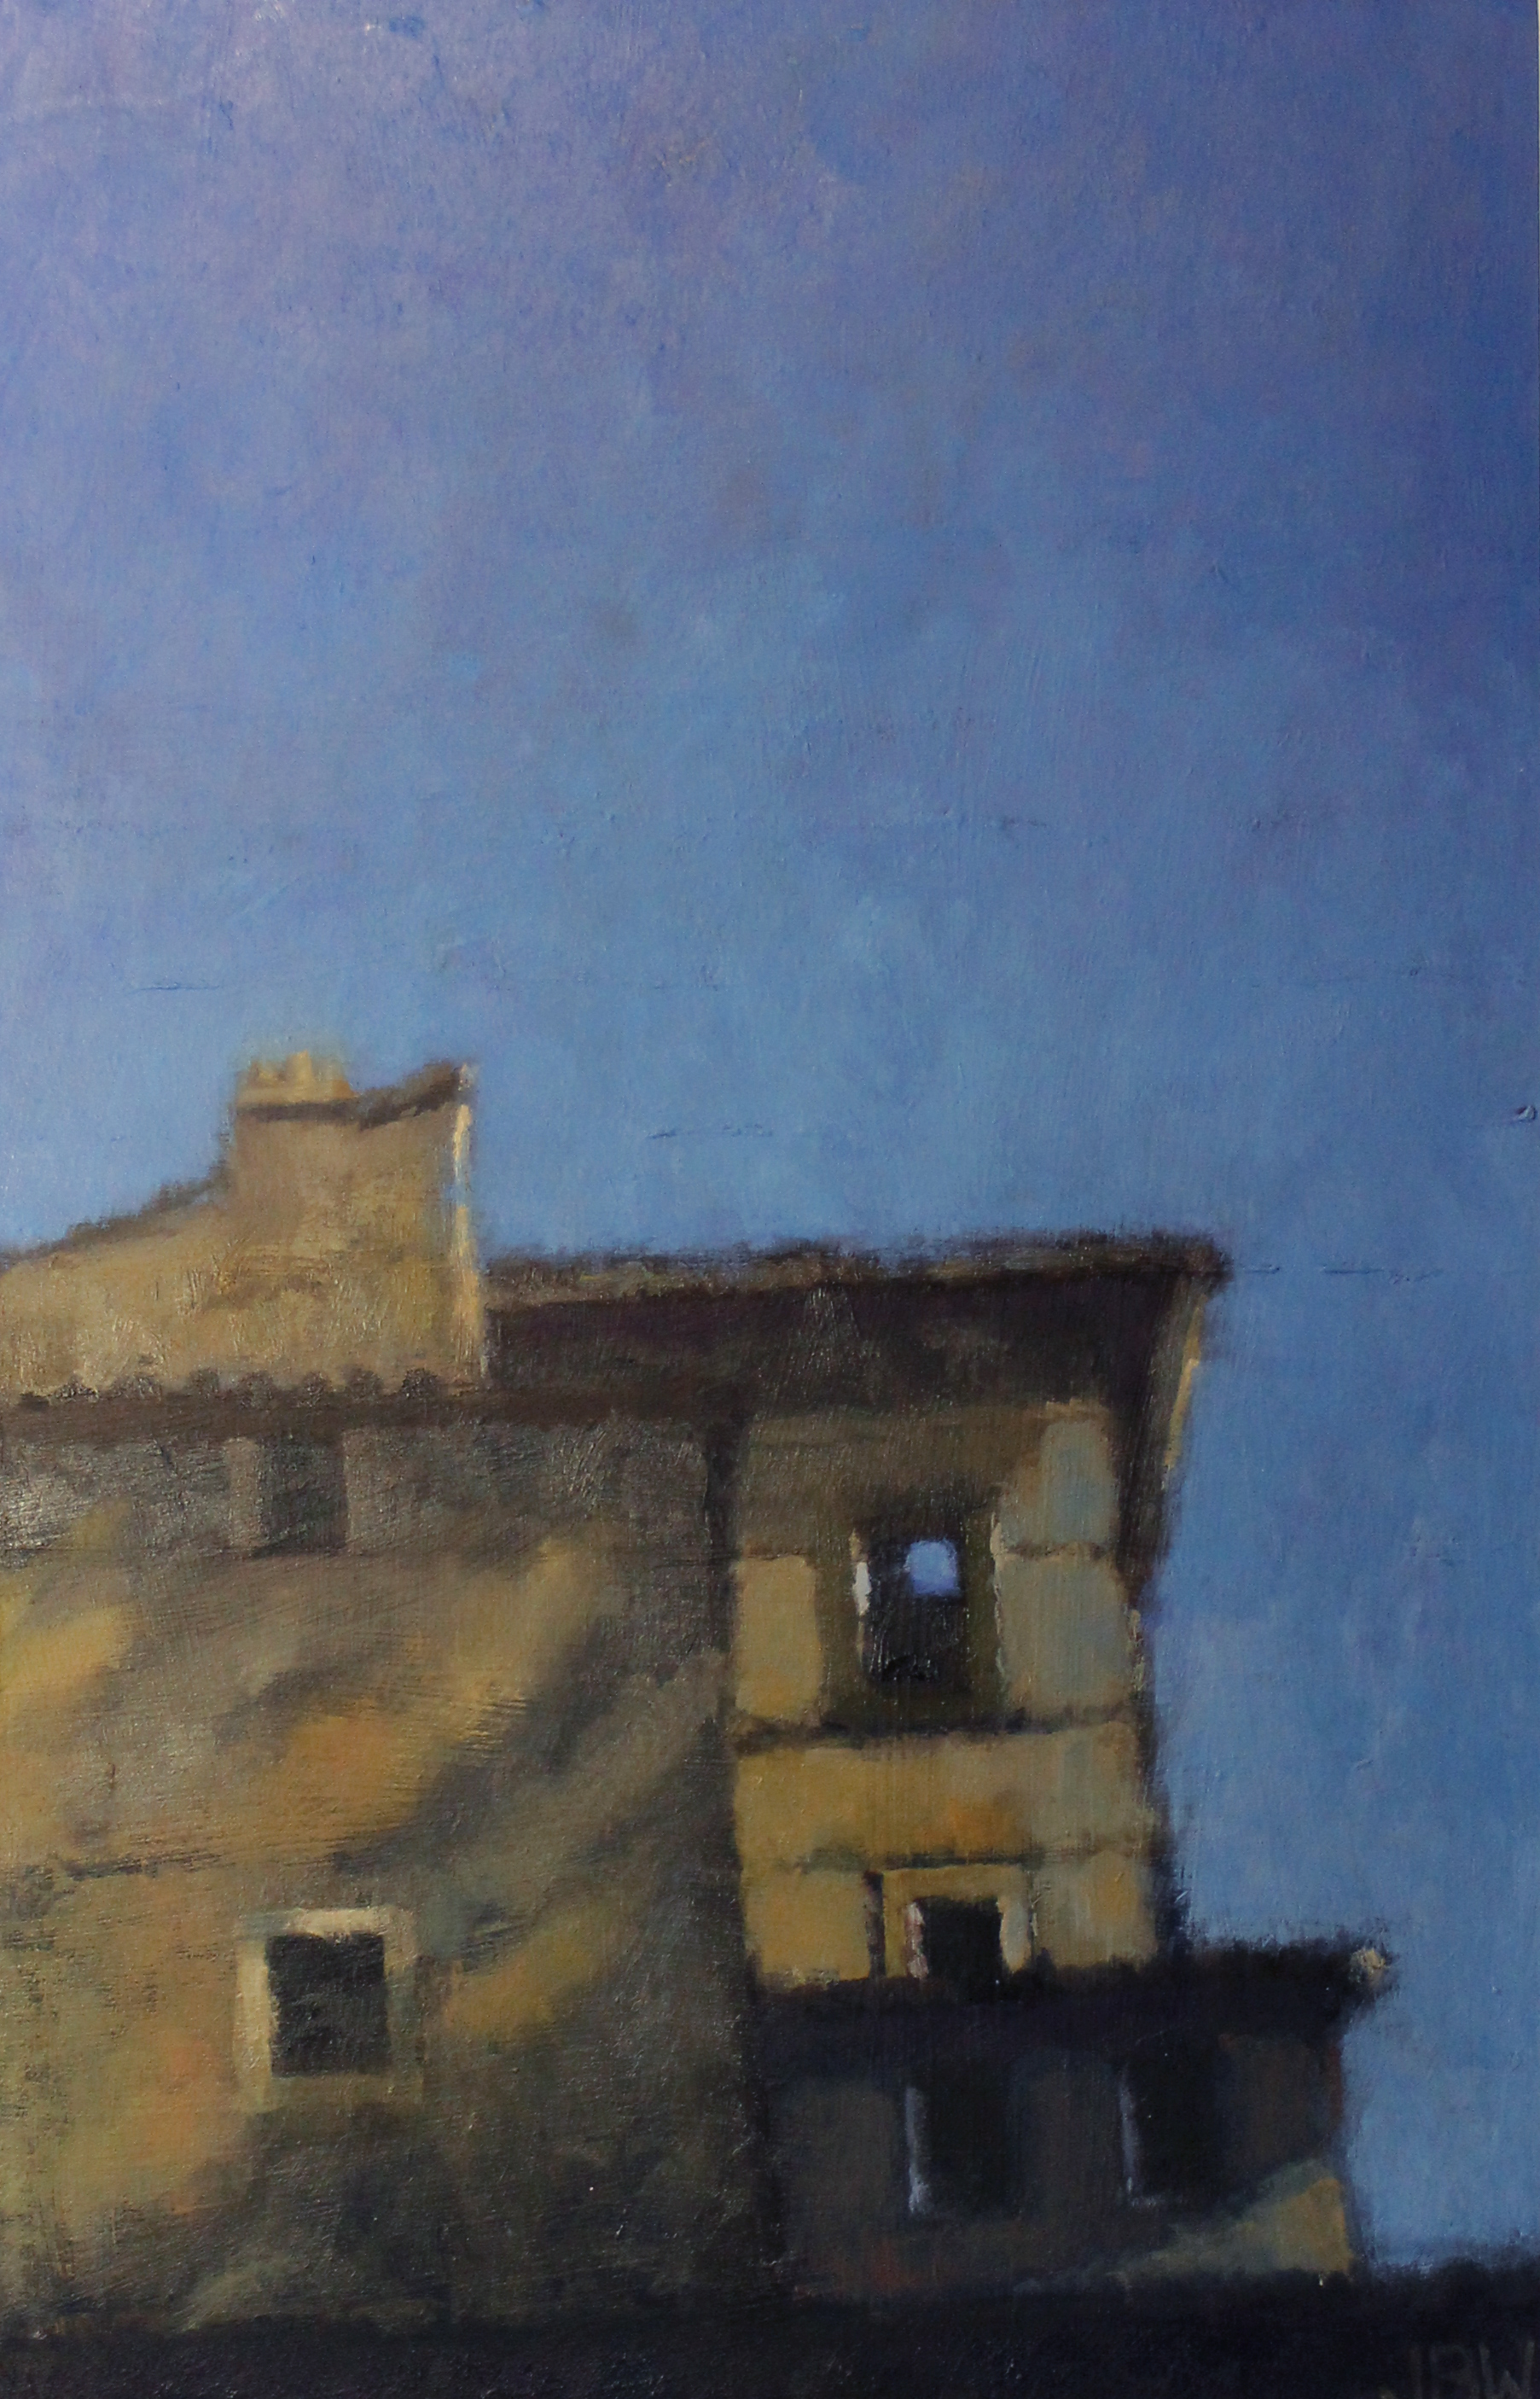 Blue Sky Rome, Oil on board, 44 x 30 cm